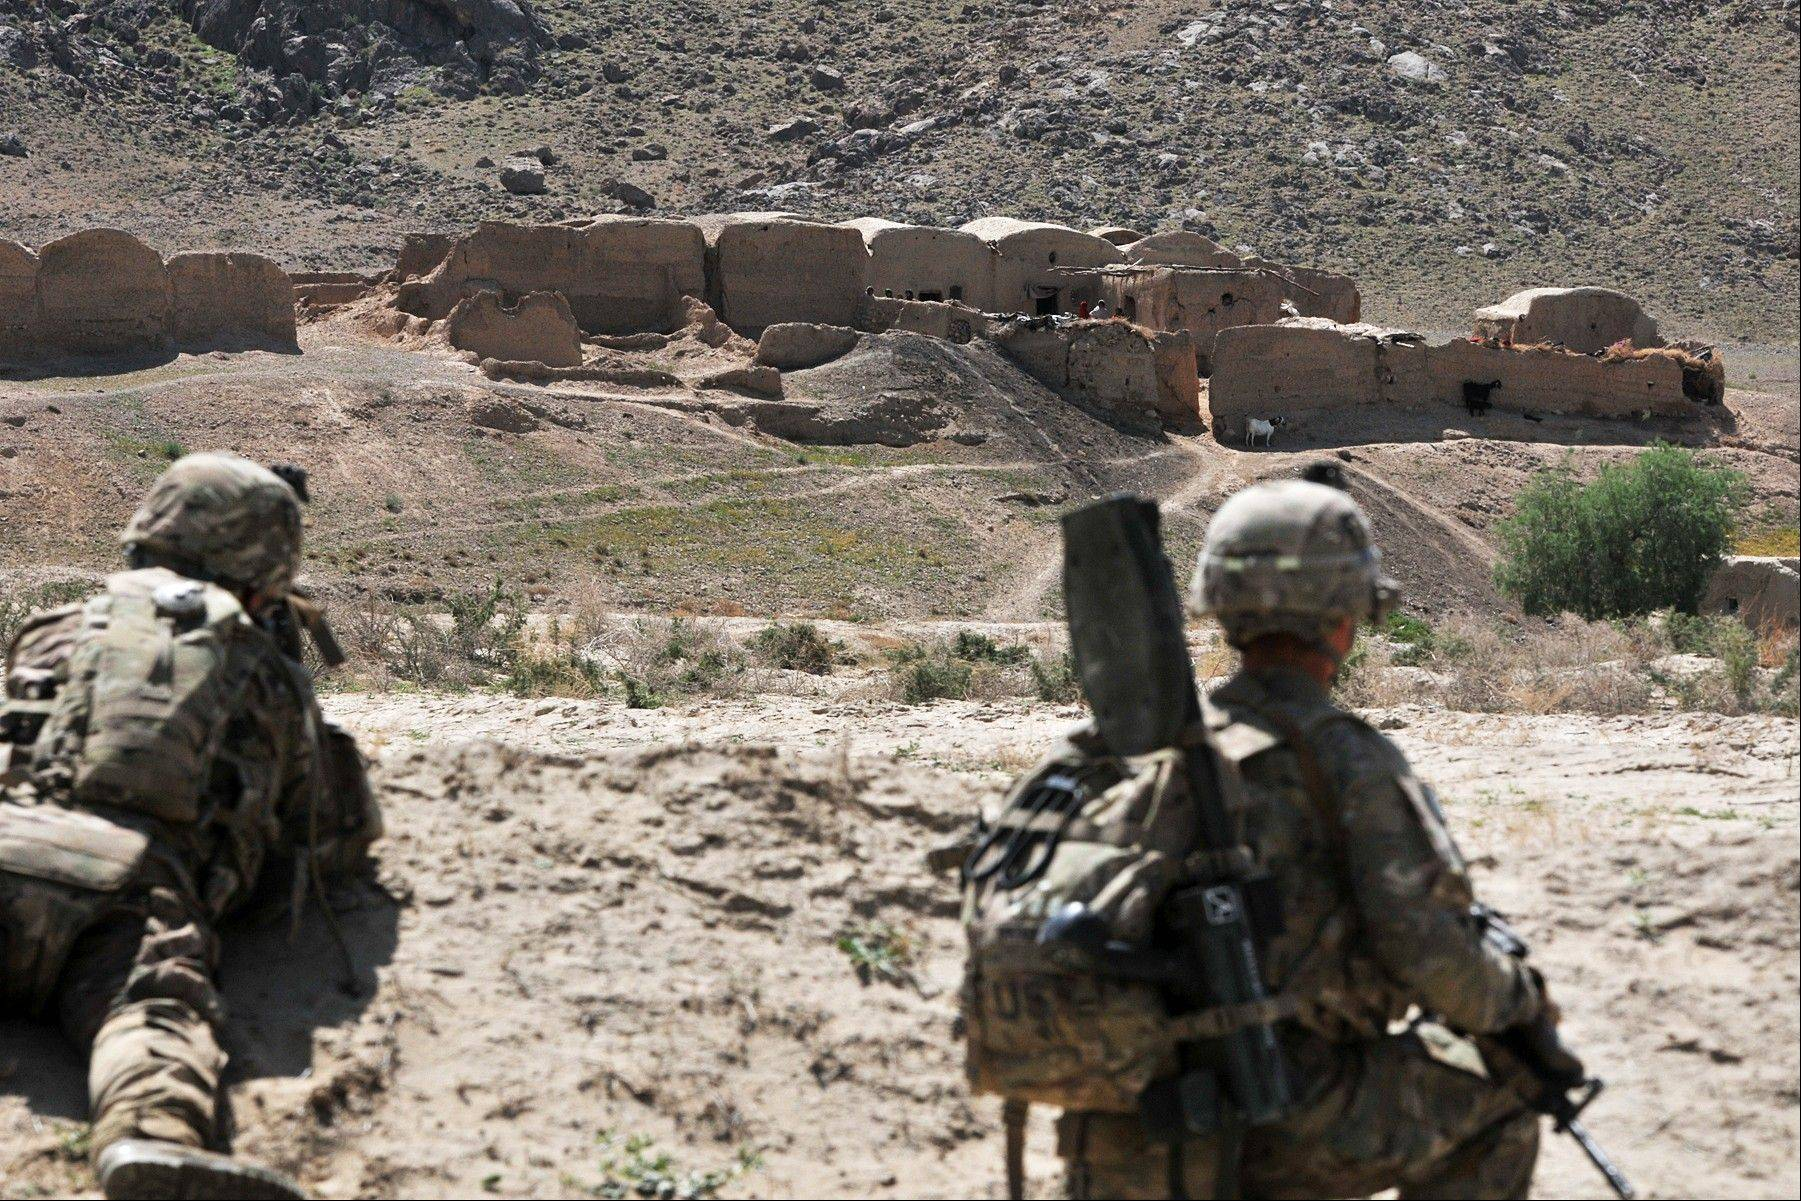 Associated Press.April 10Soldiers with Charlie Company, 1st Battalion, 38th Infantry Regiment, 4th Brigade Combat Team, 2nd Infantry Division provide security while their comrades search a village in the Panjwai district of Kandahar province, Afghanistan.